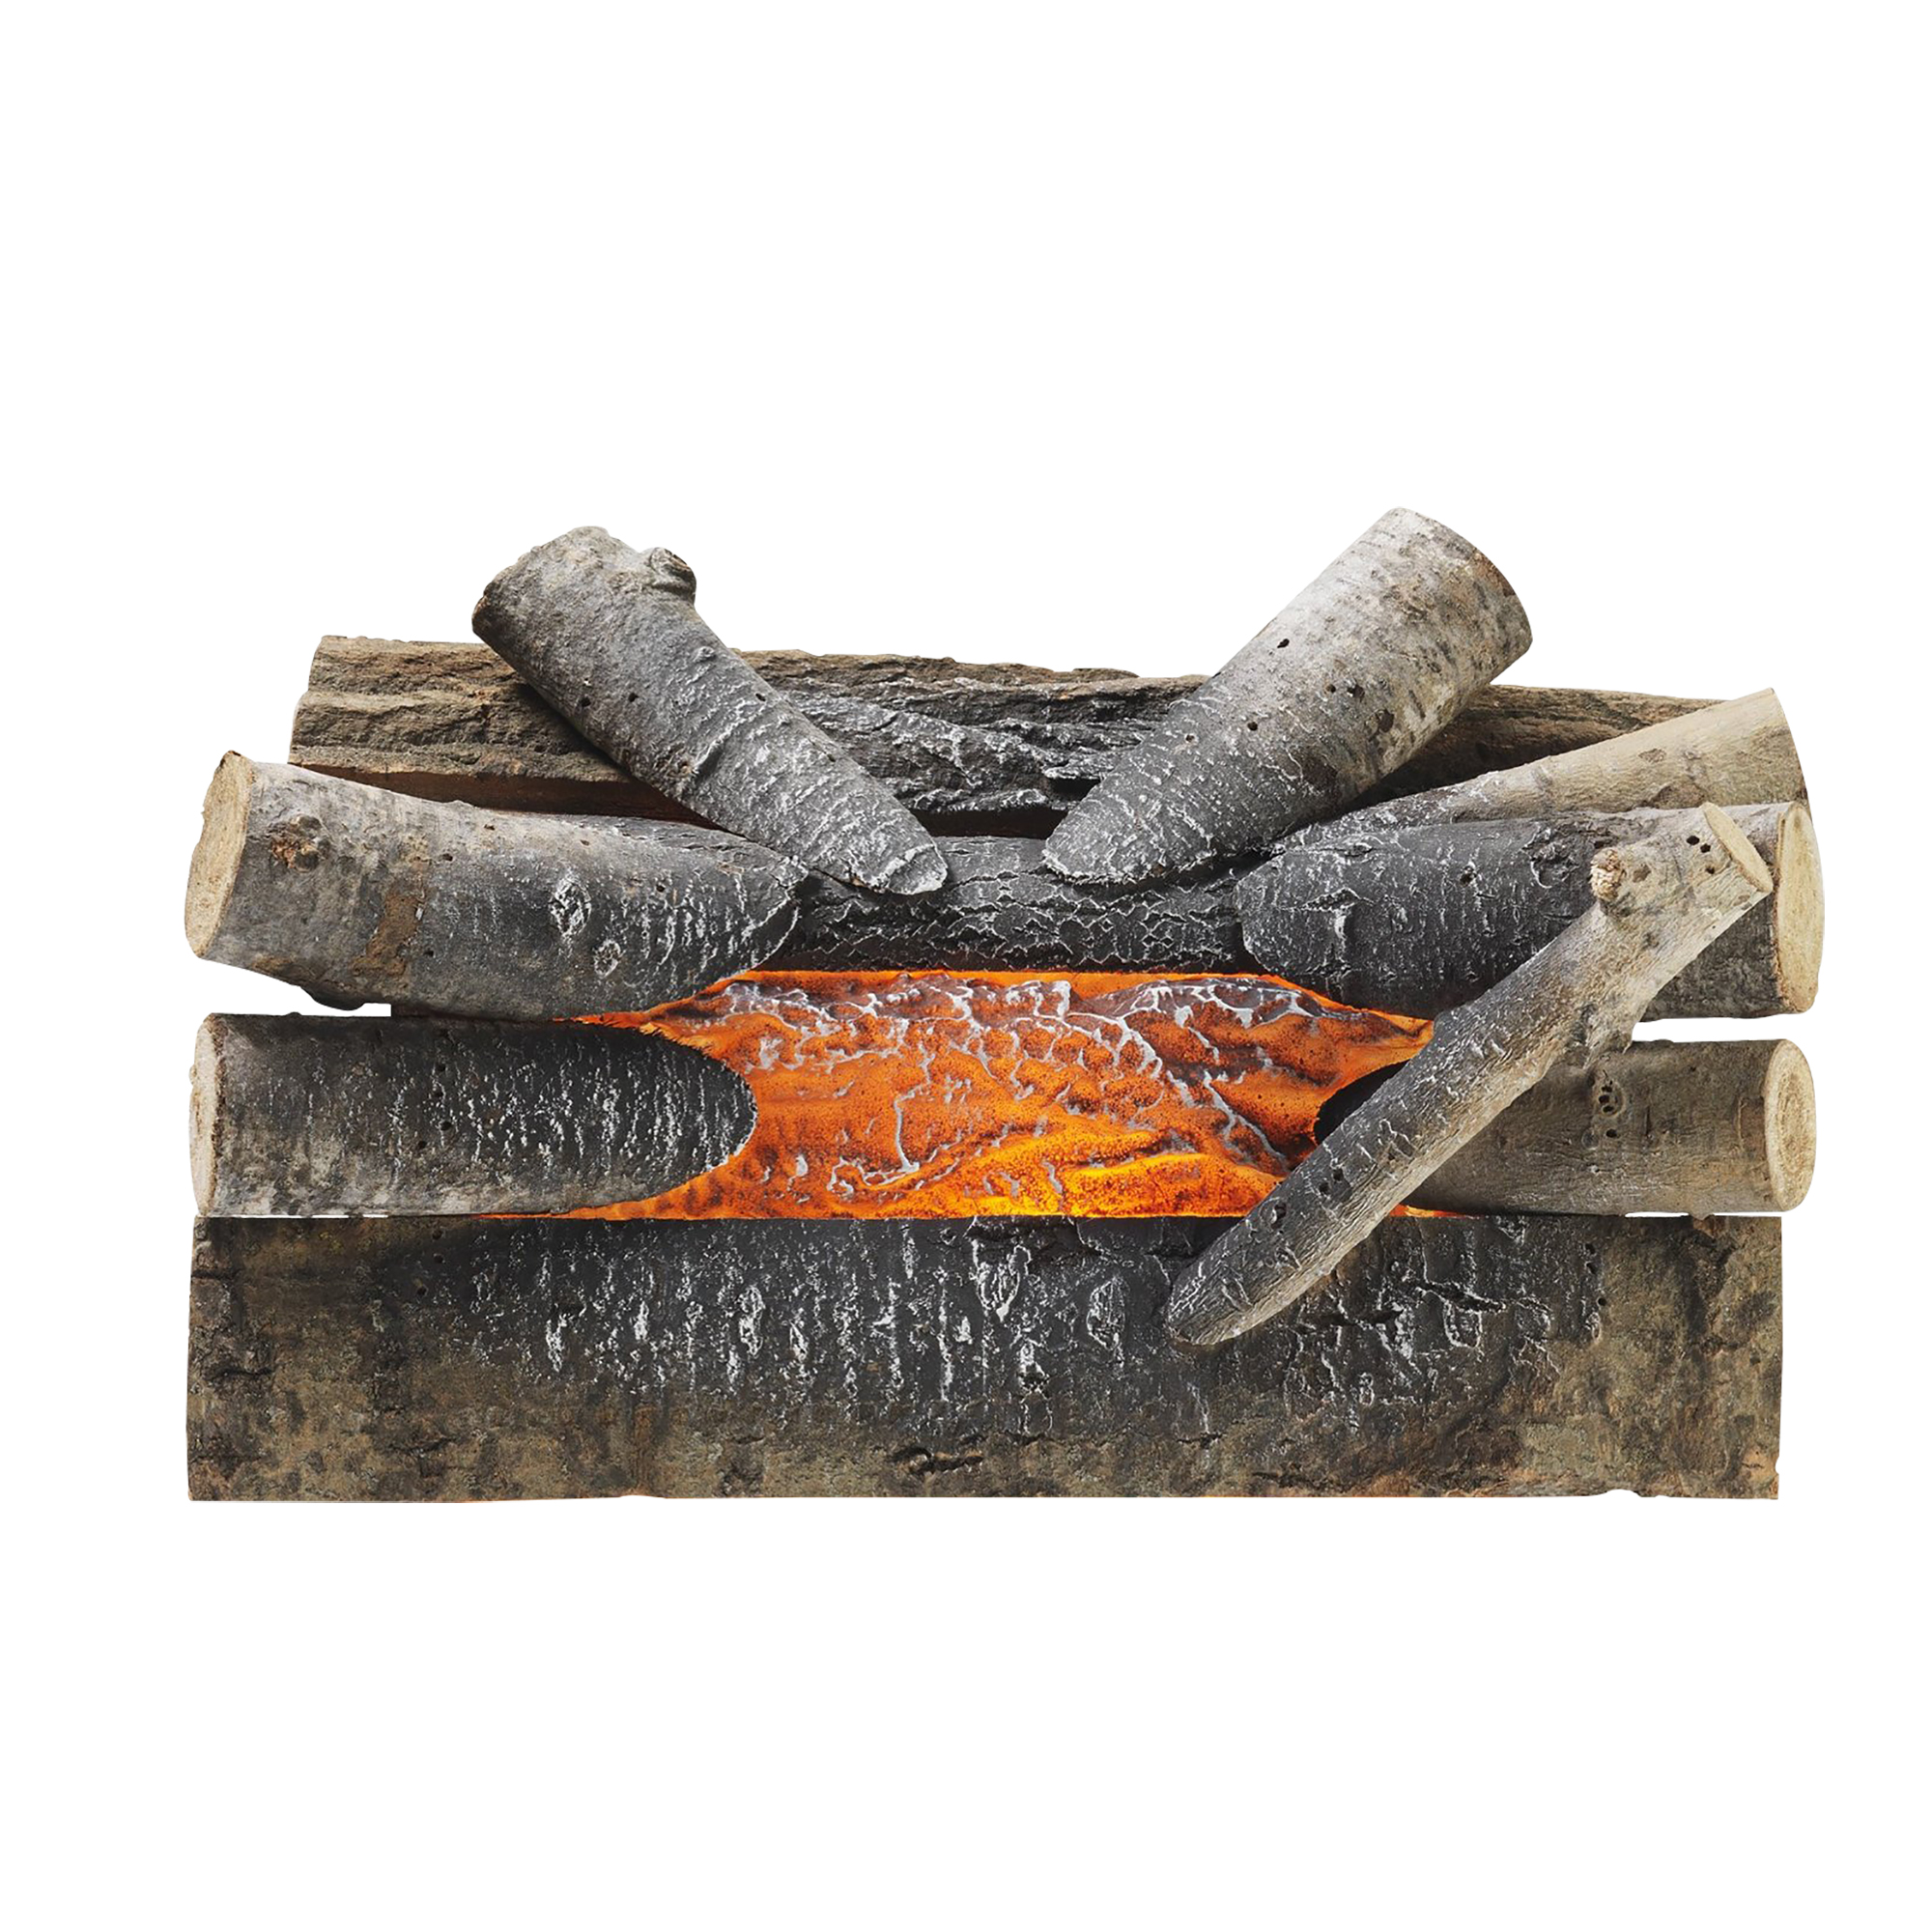 pleasant hearth indoor fireplaces rh walmart com Pleasant Hearth Firplace Rack Pleasant Hearth Fireplace Insert VfL Ht30dr